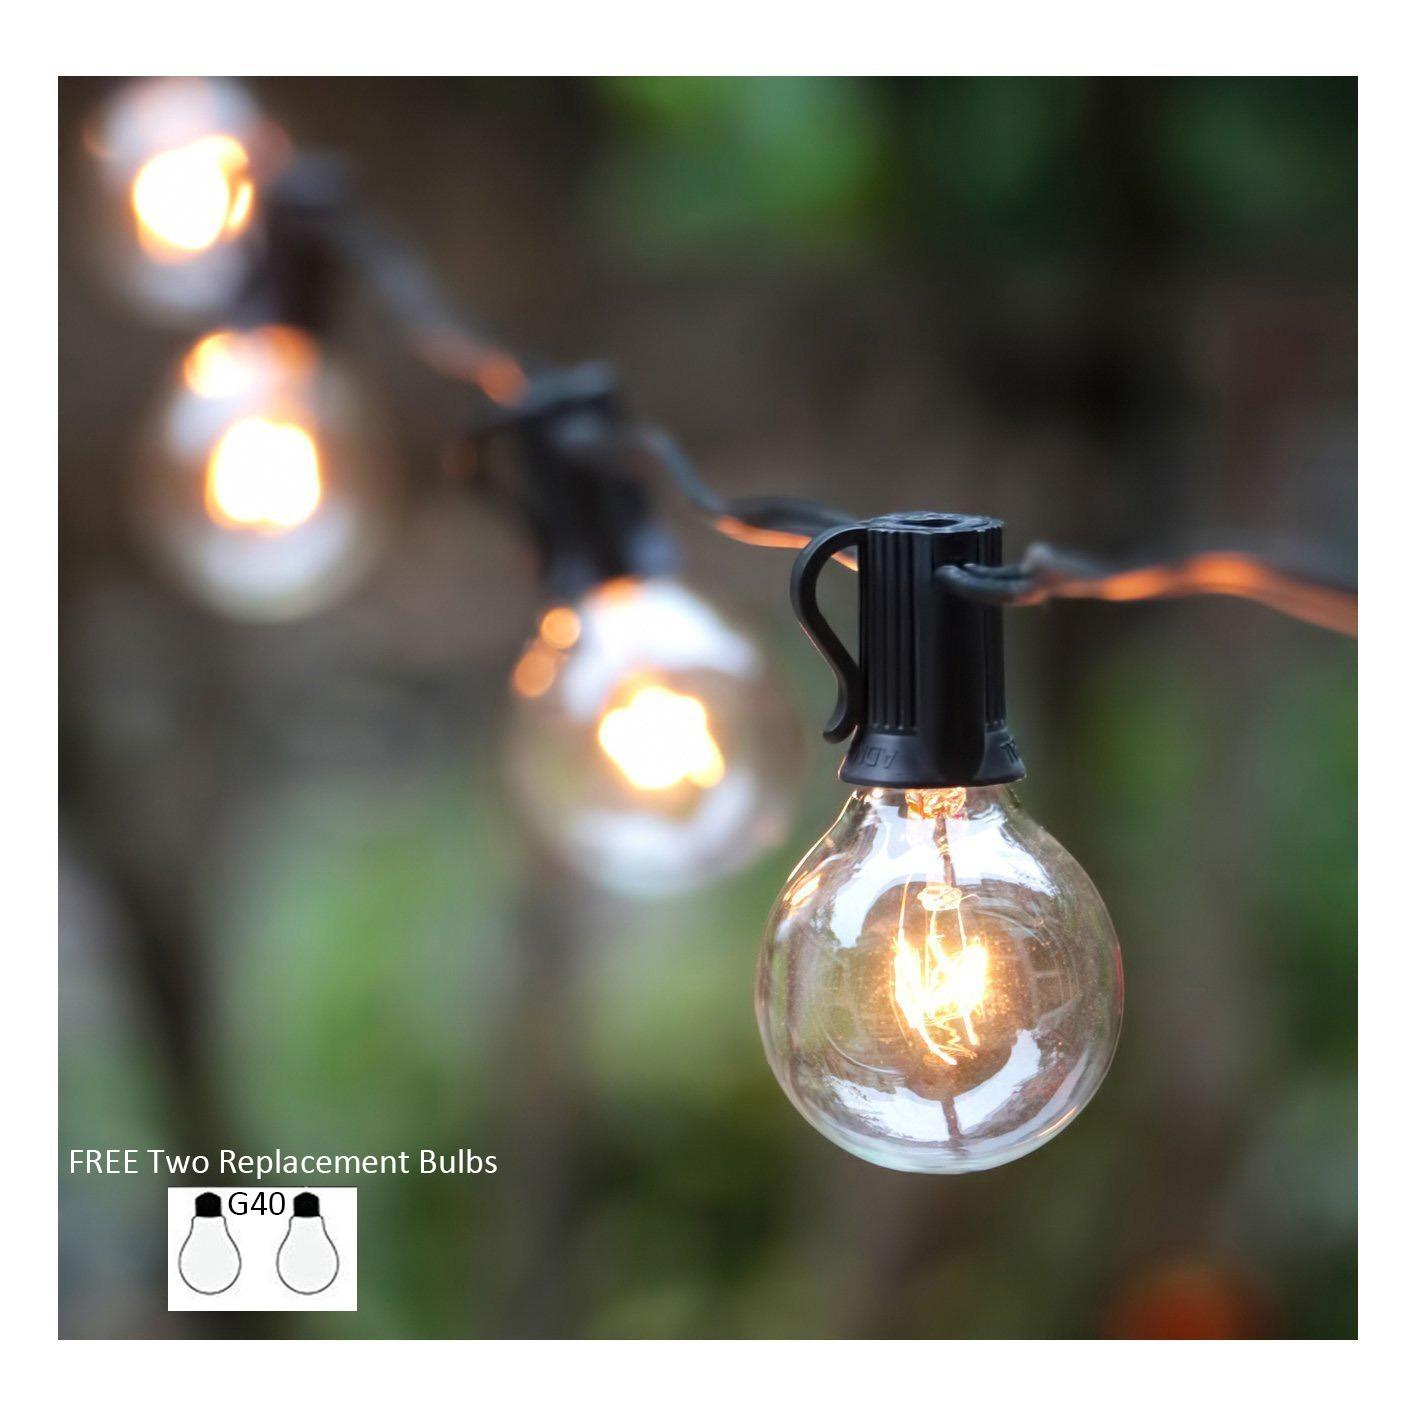 25Ft (7.6m) G40 Globe String Lights with Clear Bulbs, UL listed Backyard Patio Lights, Hanging Indoor/Outdoor String Light for Bistro Pergola Deckyard Tents Market Cafe Gazebo Porch Letters Party Decor, Black - intl